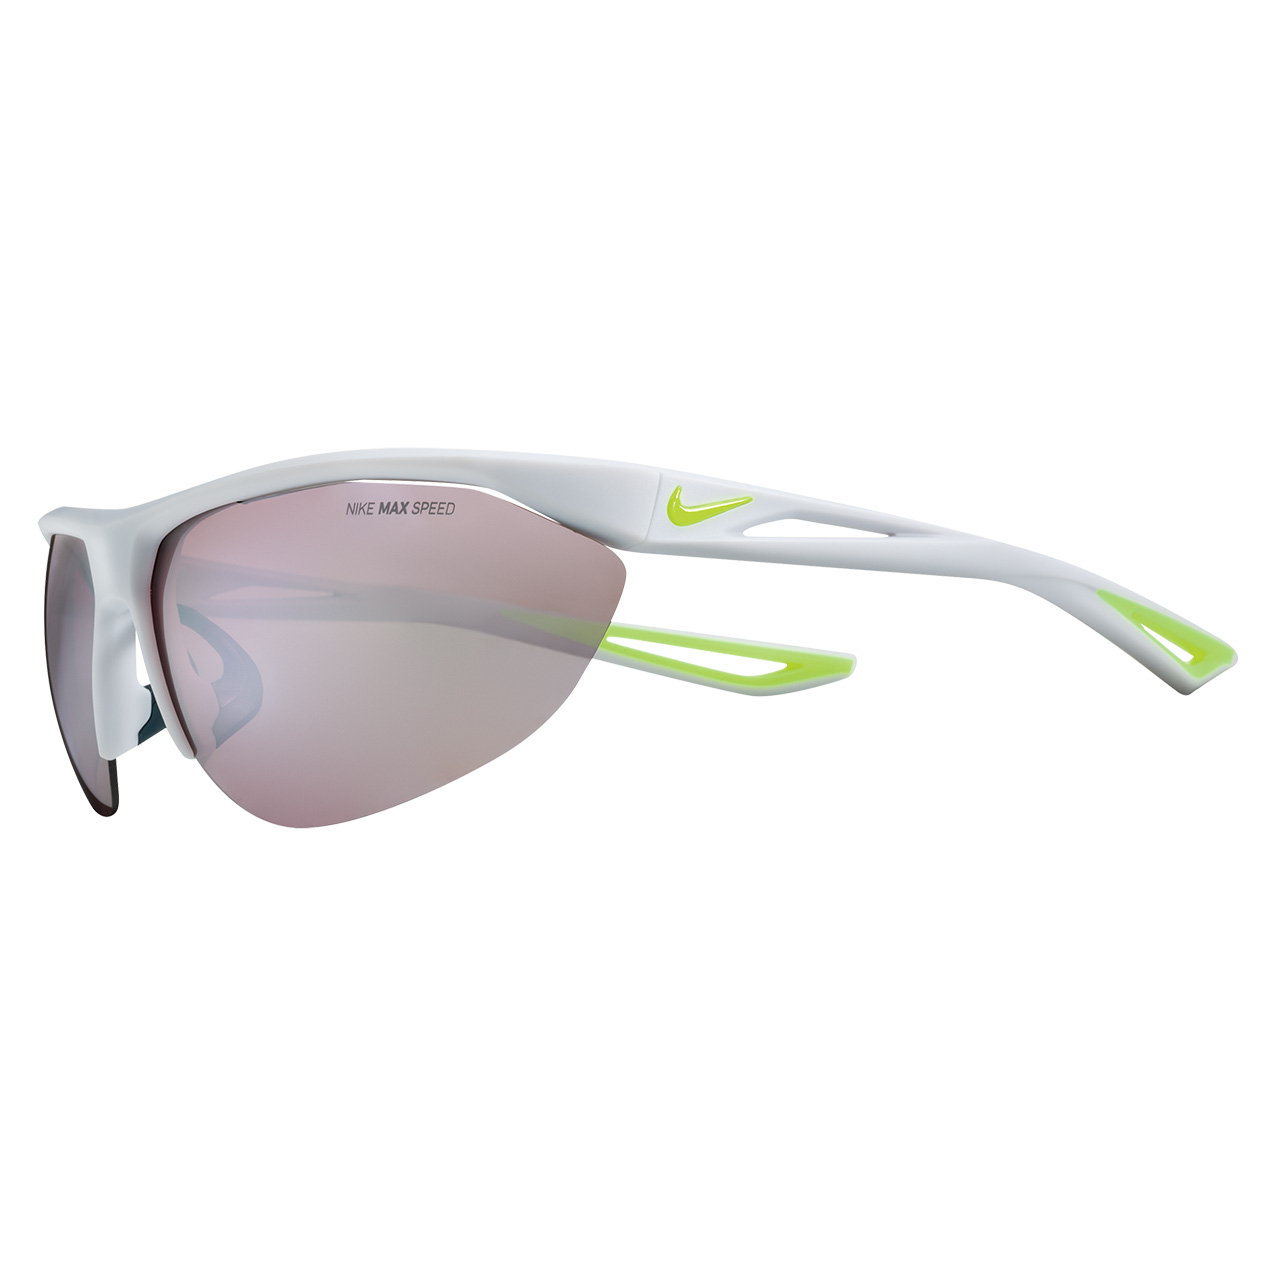 Nike Tailwind Swift Shades of Unlimited Sunglasses 845278